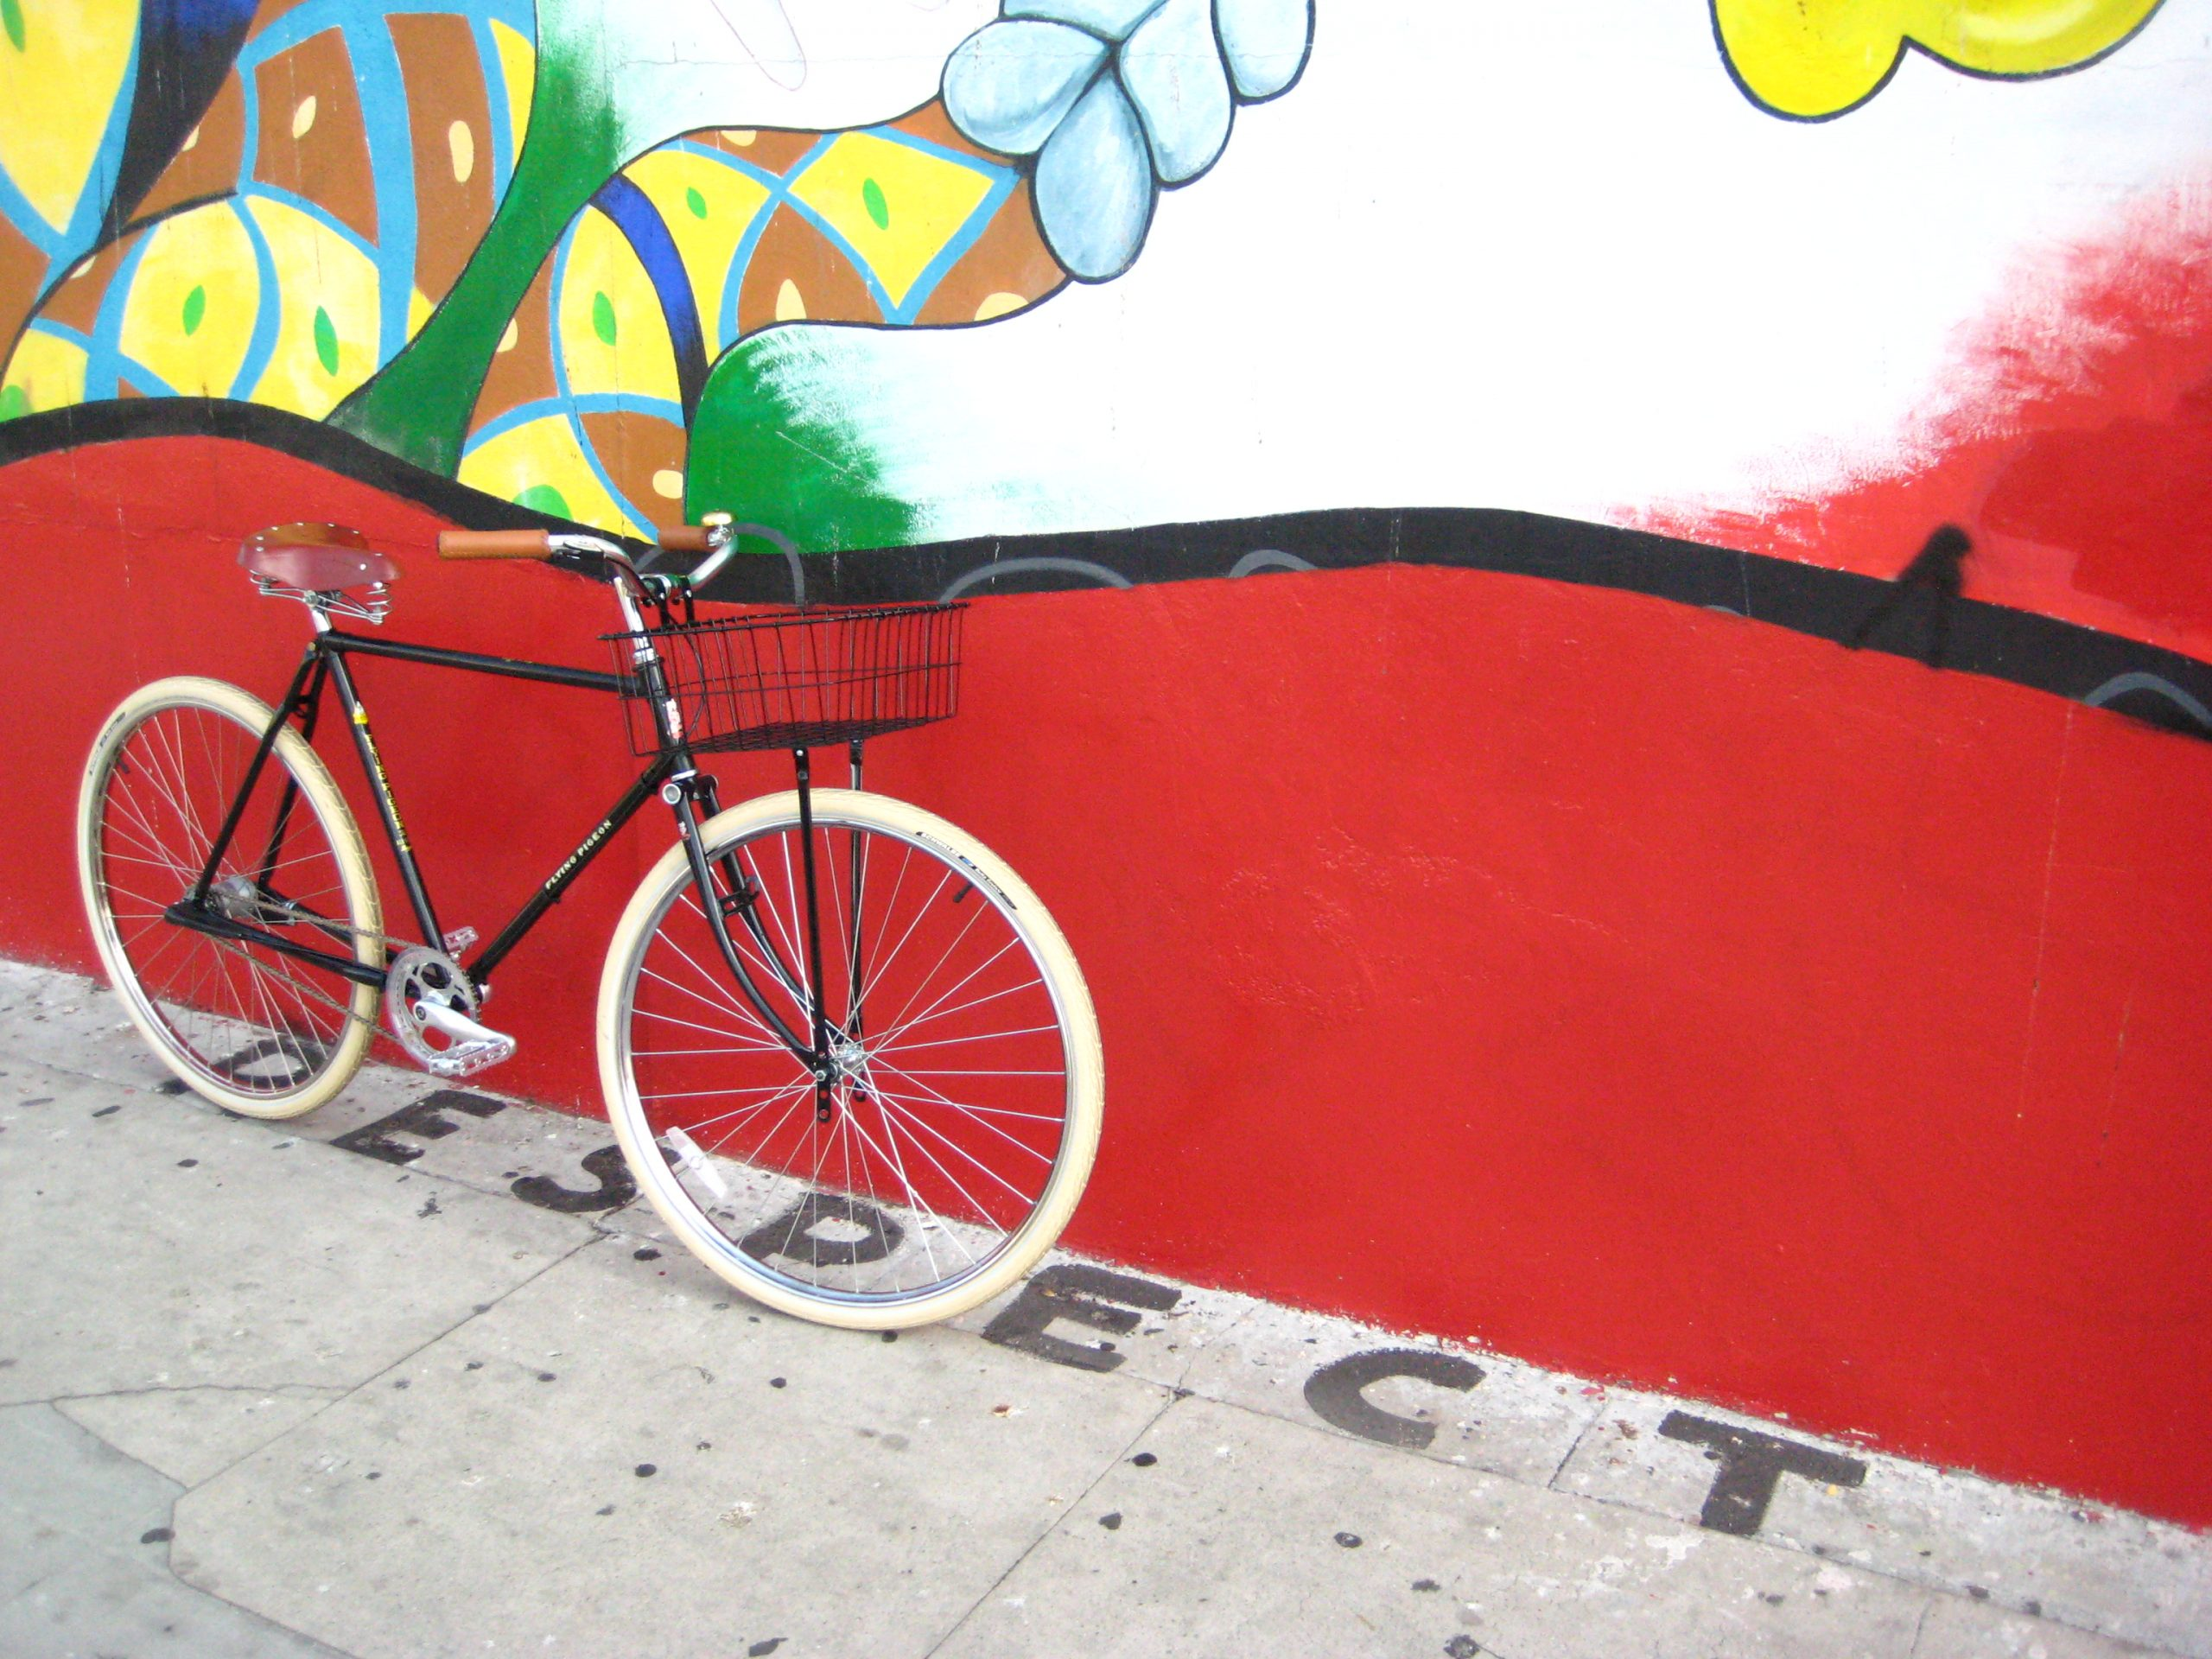 Bicycle against colored wall